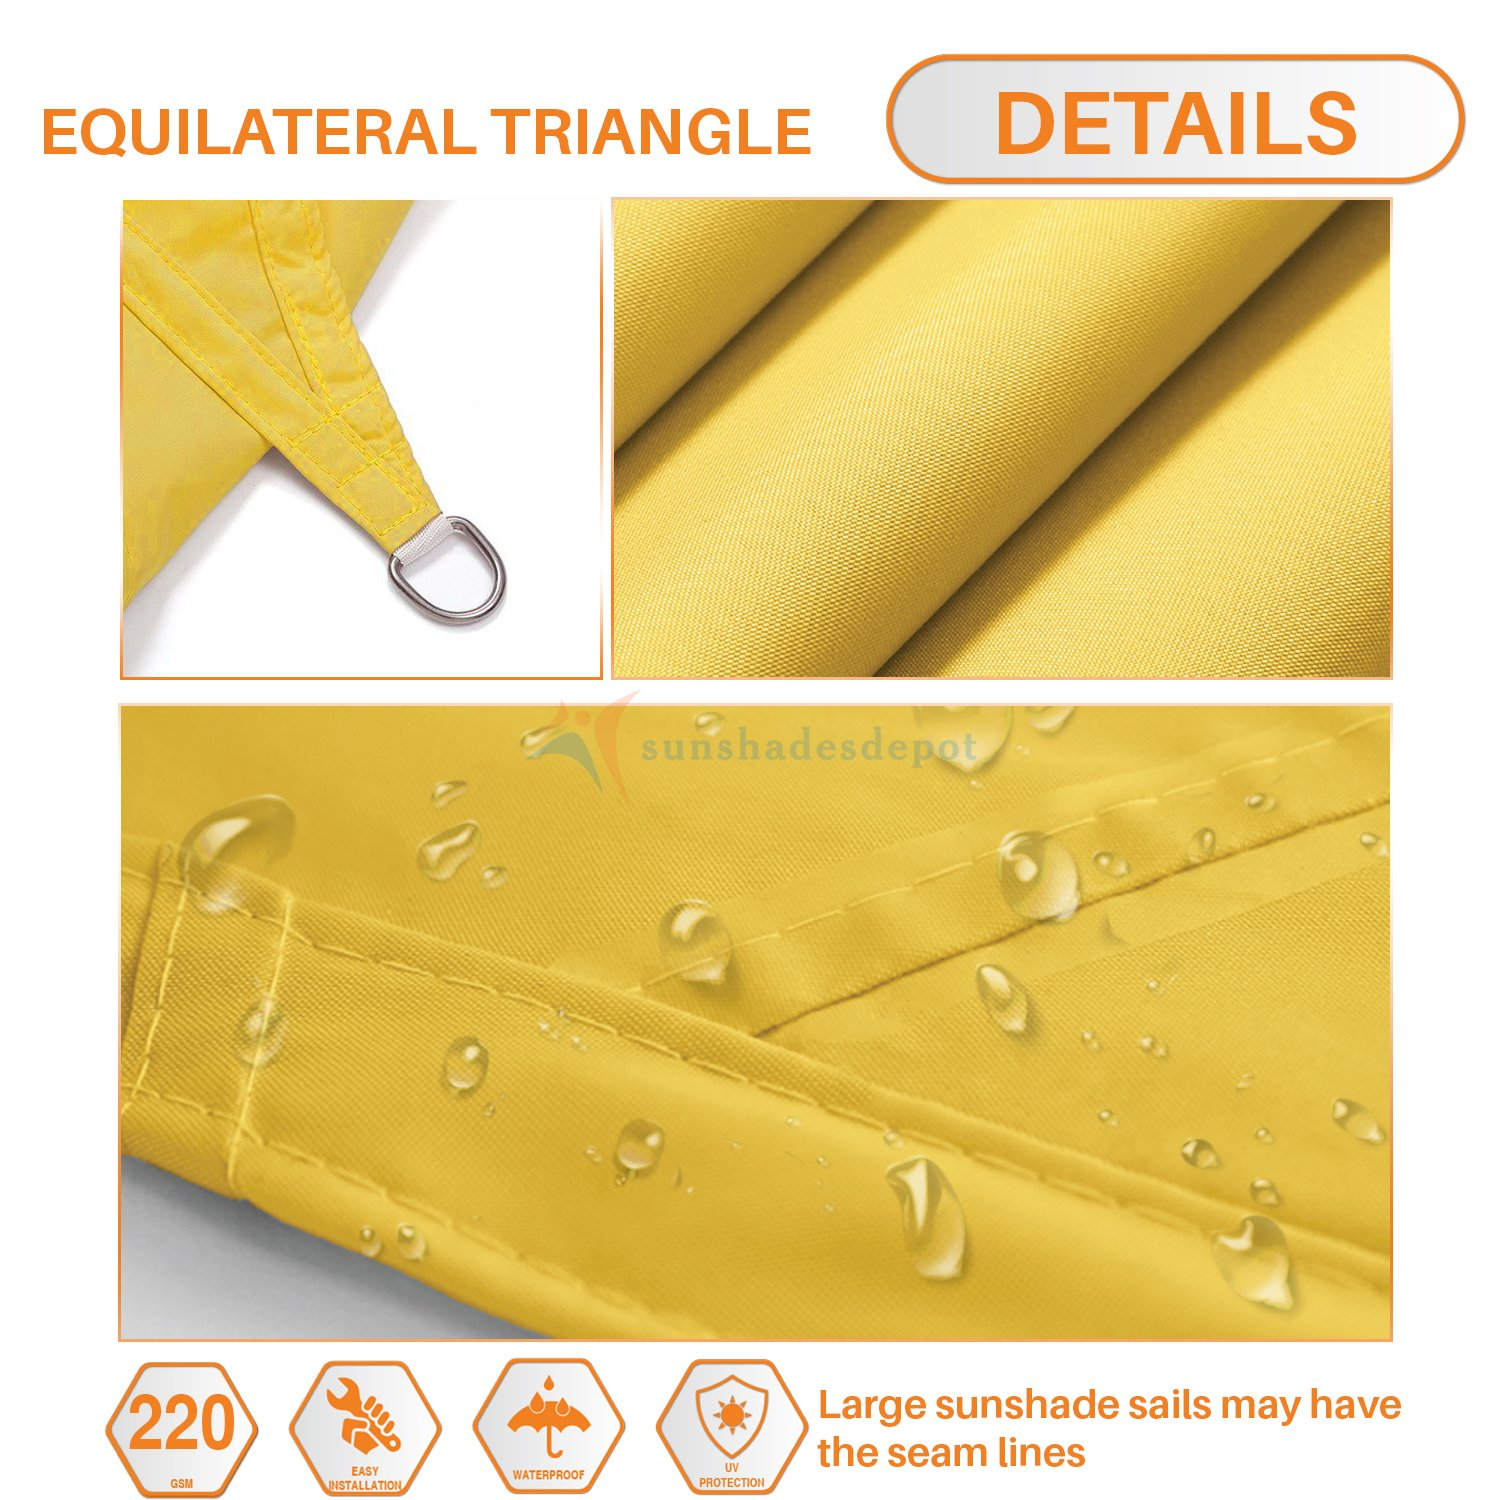 Sunshades Depot 20 x20 x20 Equilateral Triangle Waterproof Knitted Shade Sail Curved Edge Yellow 220 GSM UV Block Shade Fabric Pergola Carport Awning Canopy Replacement Awning